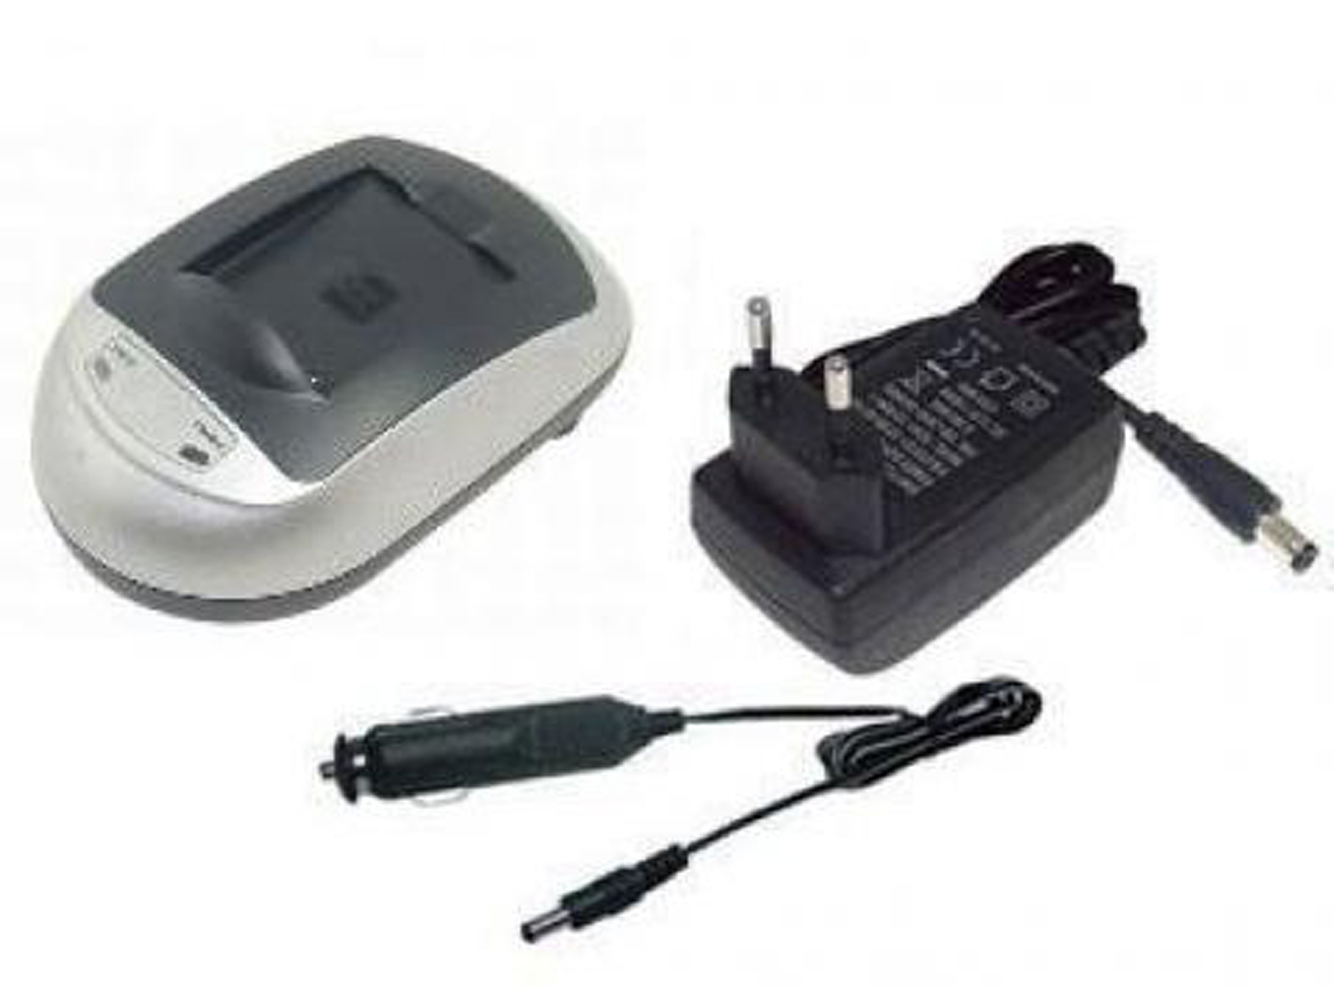 Battery Charger for CANON NB-4L, CB-2LV, CB-2LVE